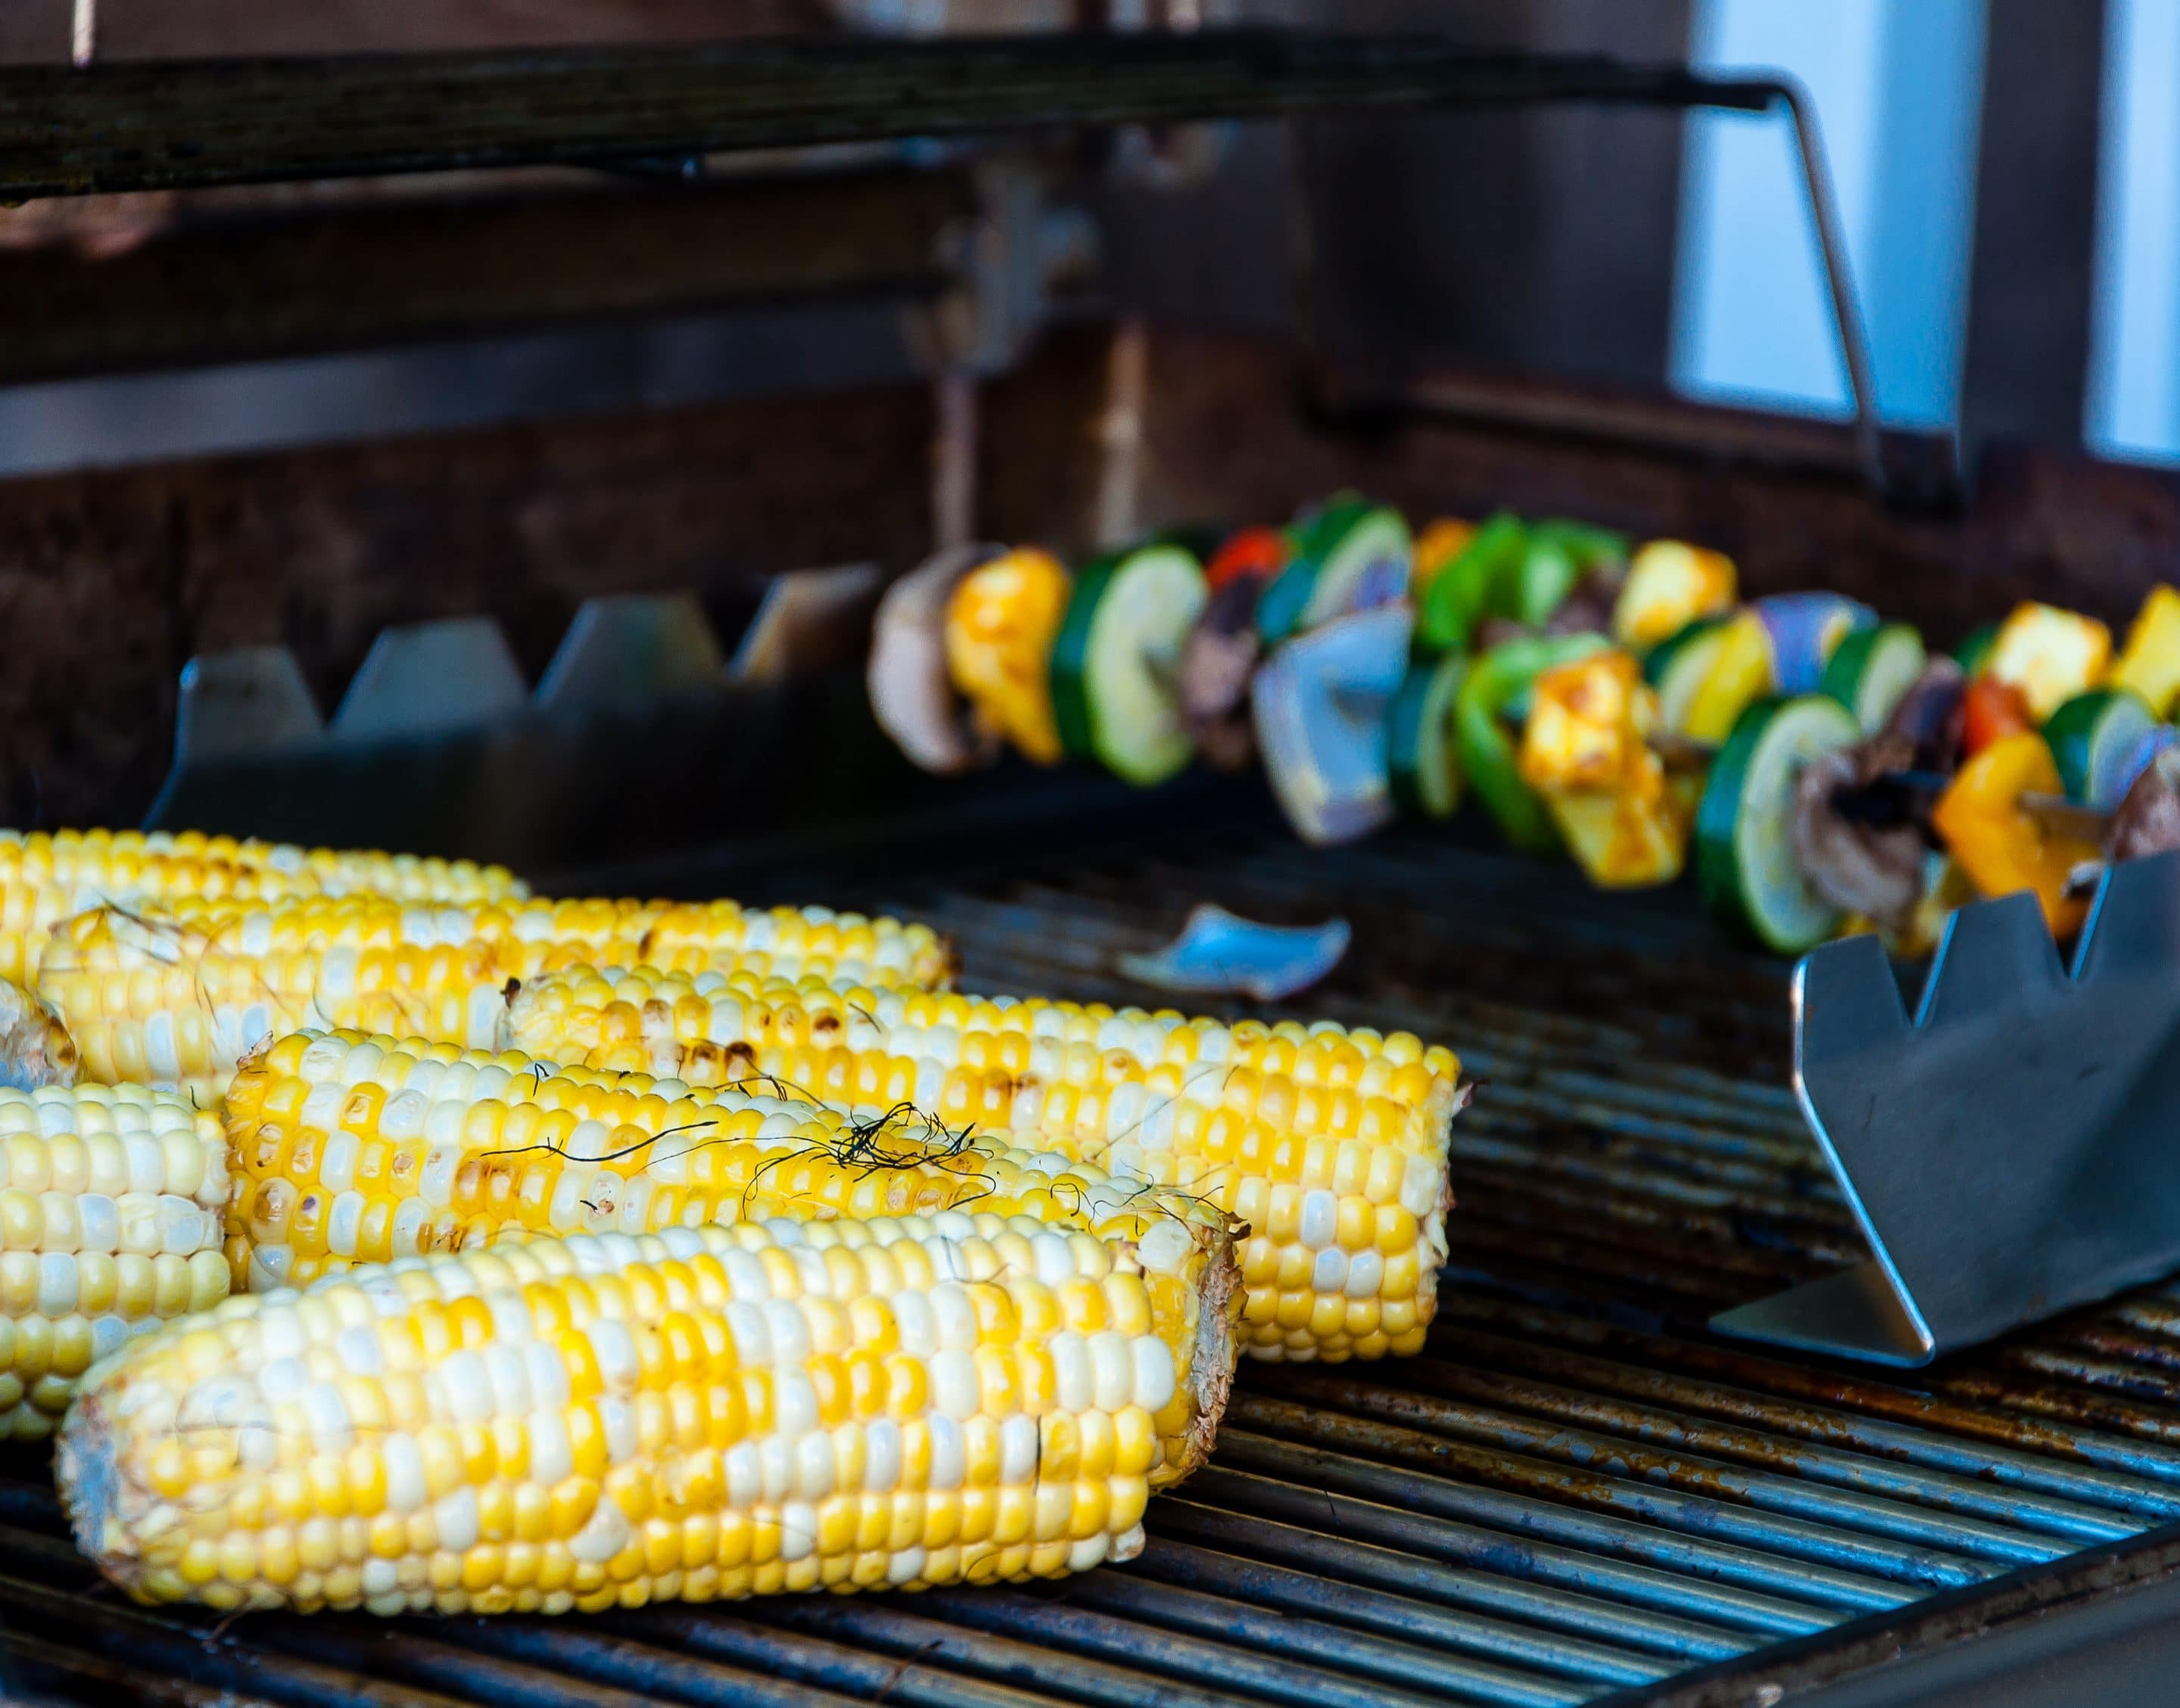 Grilled Ancho Chili Sweet White Corn on the Cob via @mermaidsandmojitos